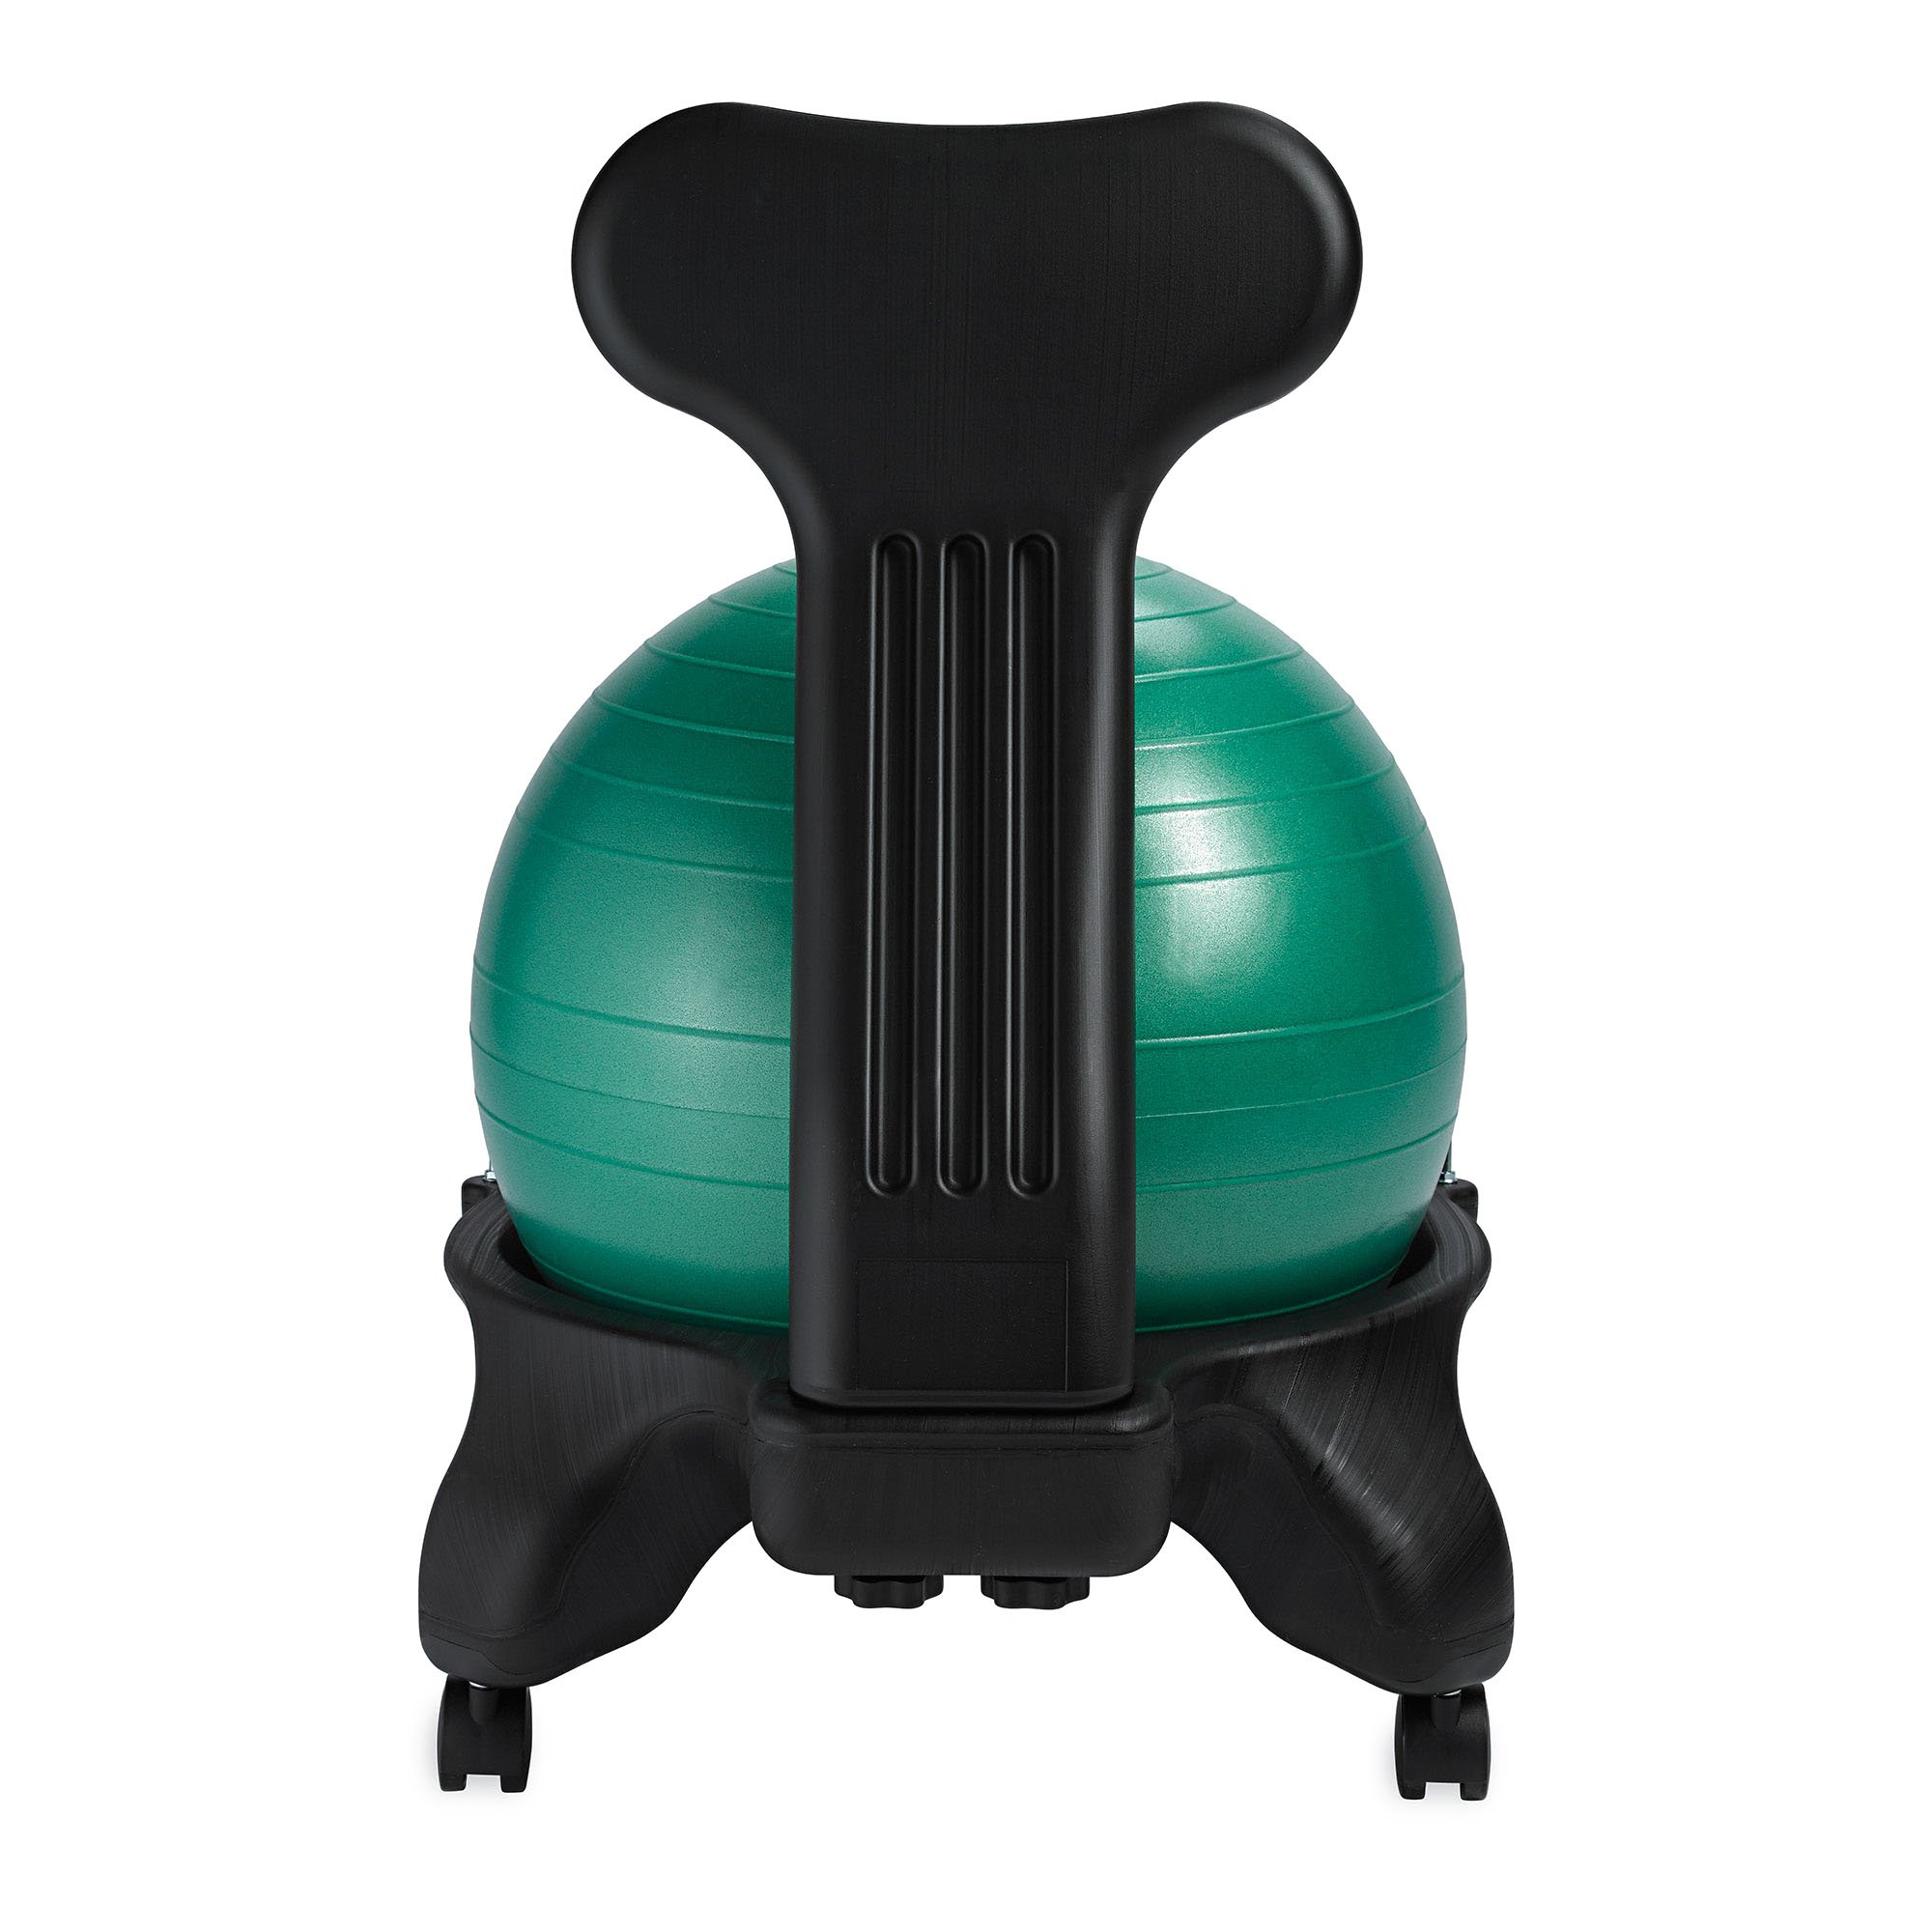 Gaiam Classic Balance Ball Chair – Exercise Stability Yoga Ball Premium Ergonomic Chair for Home and Office Desk with Air Pump, Exercise Guide and Satisfaction Guarantee, Green by Gaiam (Image #9)